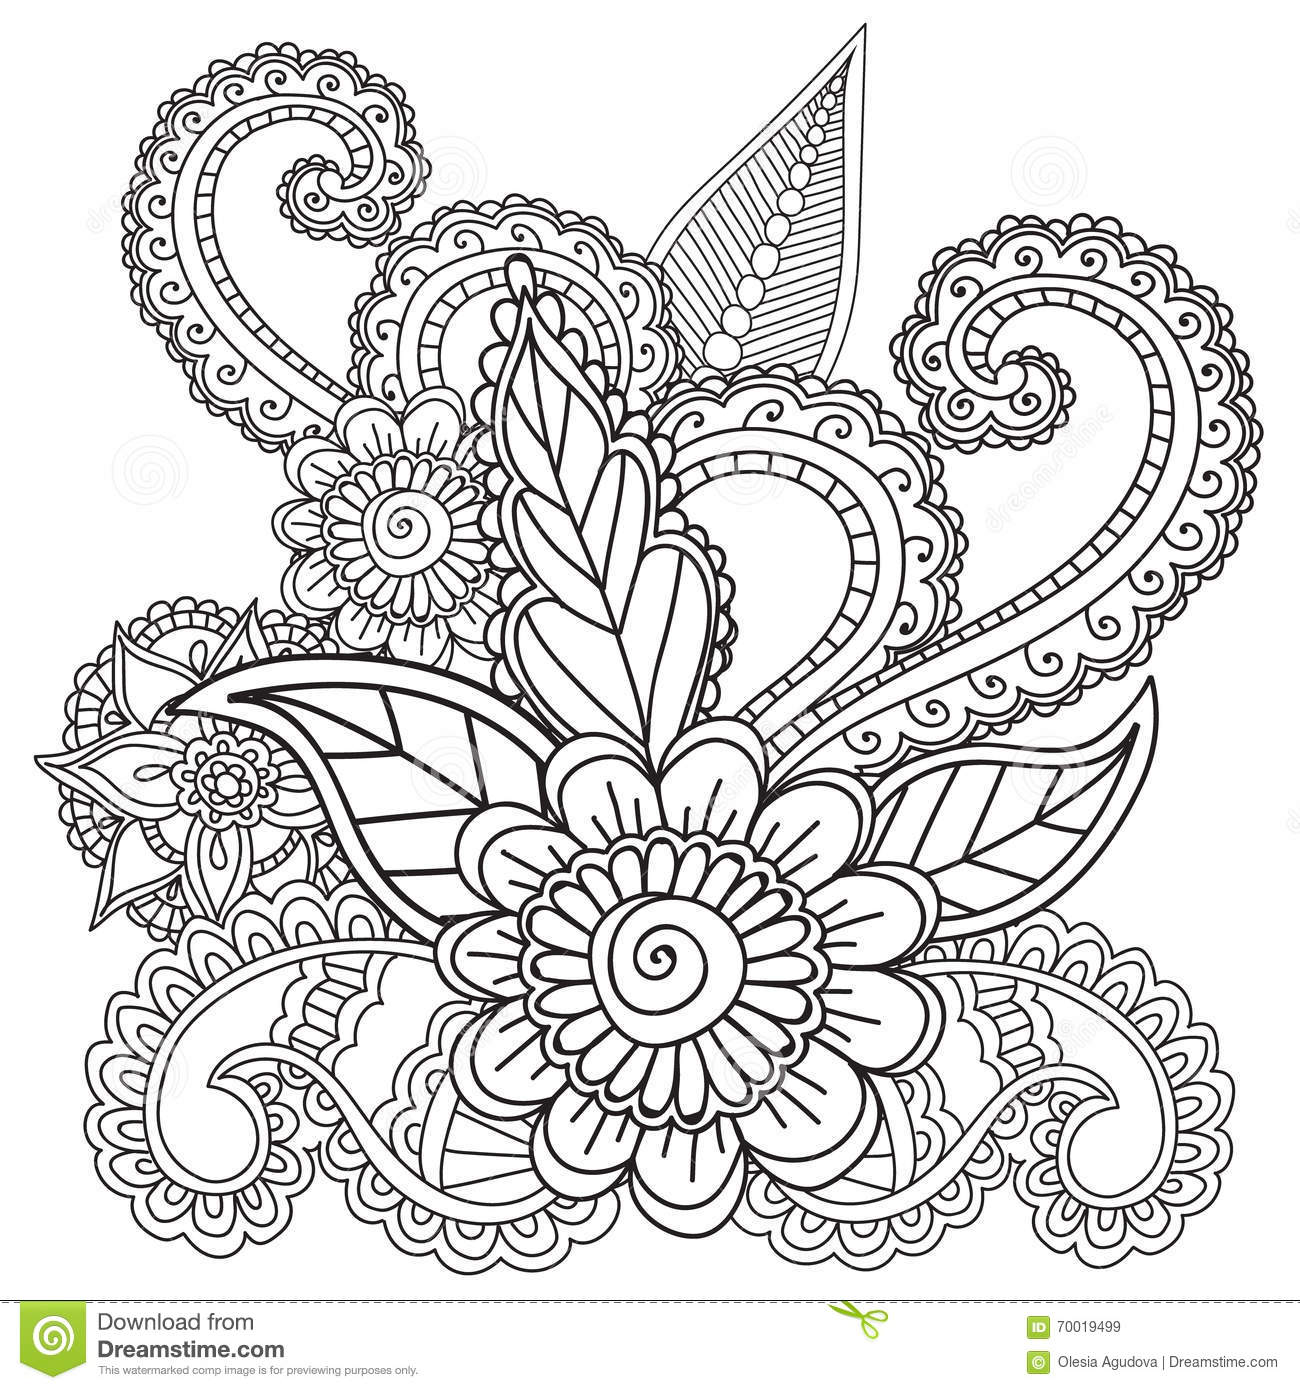 Coloring pages for adults abstract - Coloring Pages For Adults Henna Mehndi Doodles Abstract Floral Elements Royalty Free Stock Images